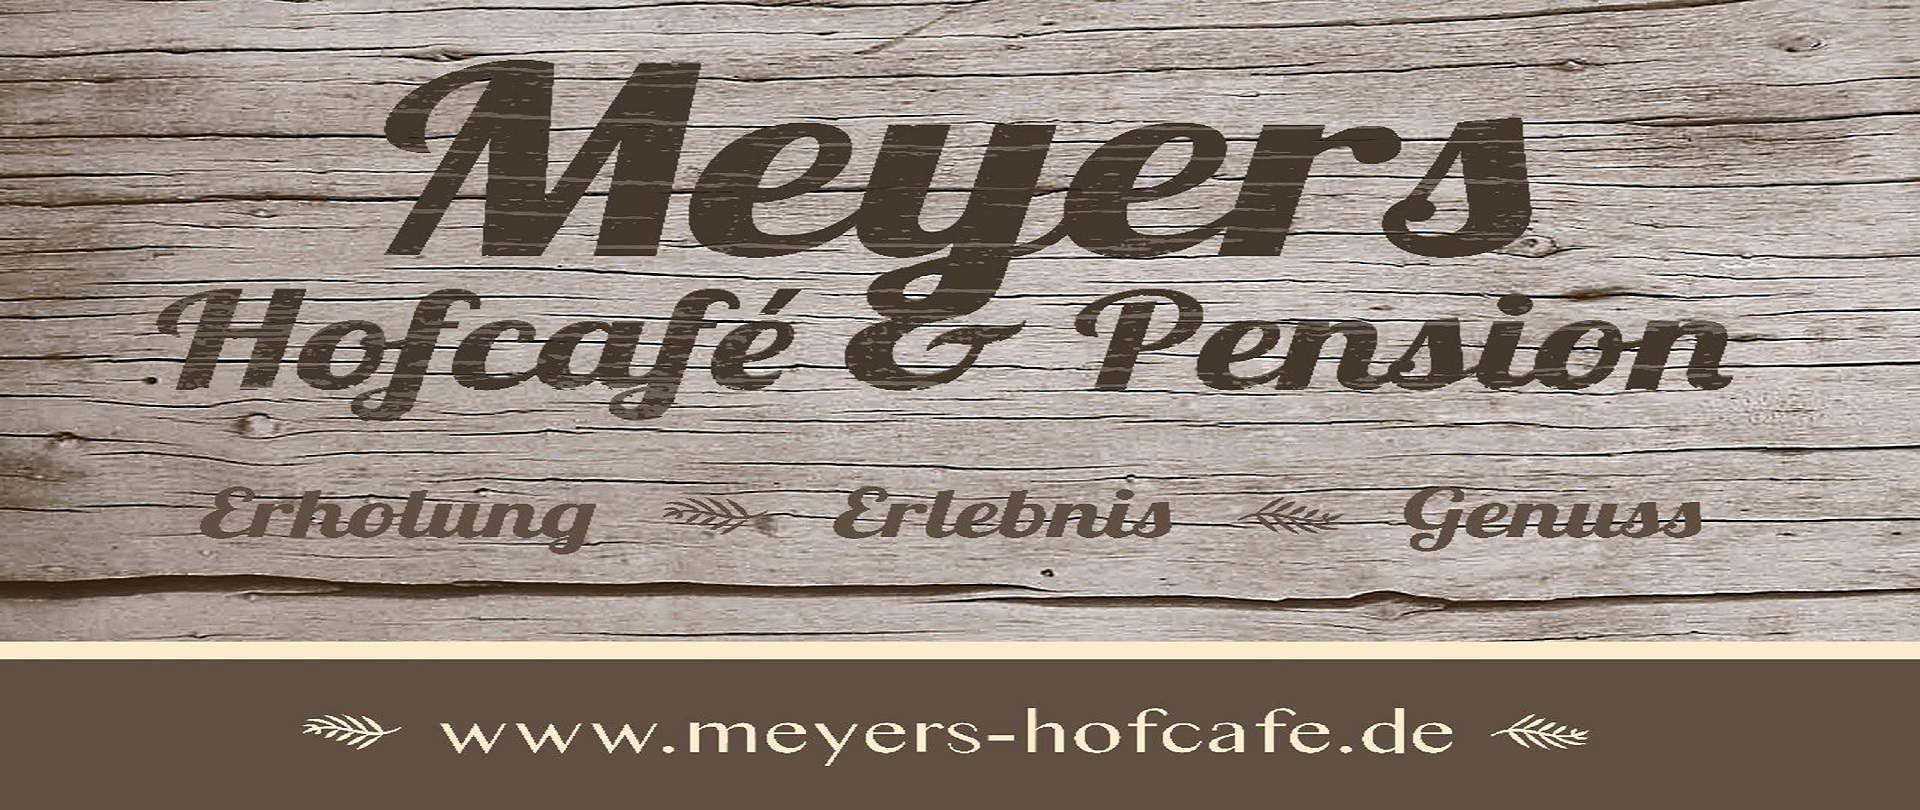 Meyers Hofcafe